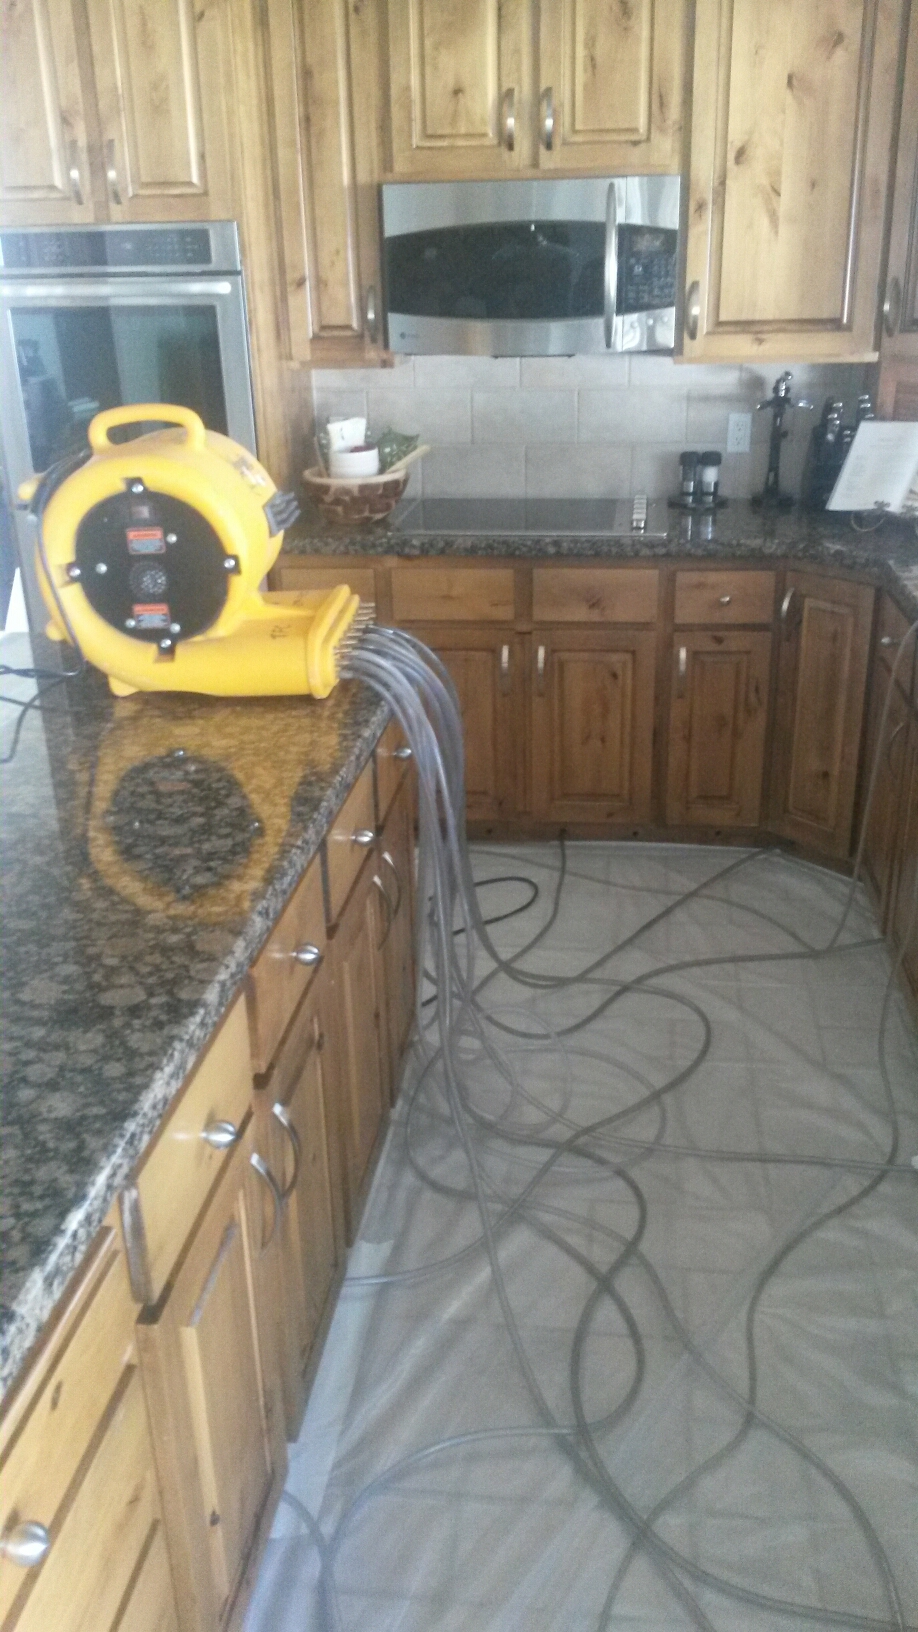 Taylorsville, UT - Water damage Cleanup in Taylorsville Utah. This is a beautiful home with a beautiful kitchen. We are trying to dry everything out to minimize the repairs. We are blowing warm air under the cabinets to dry under them.